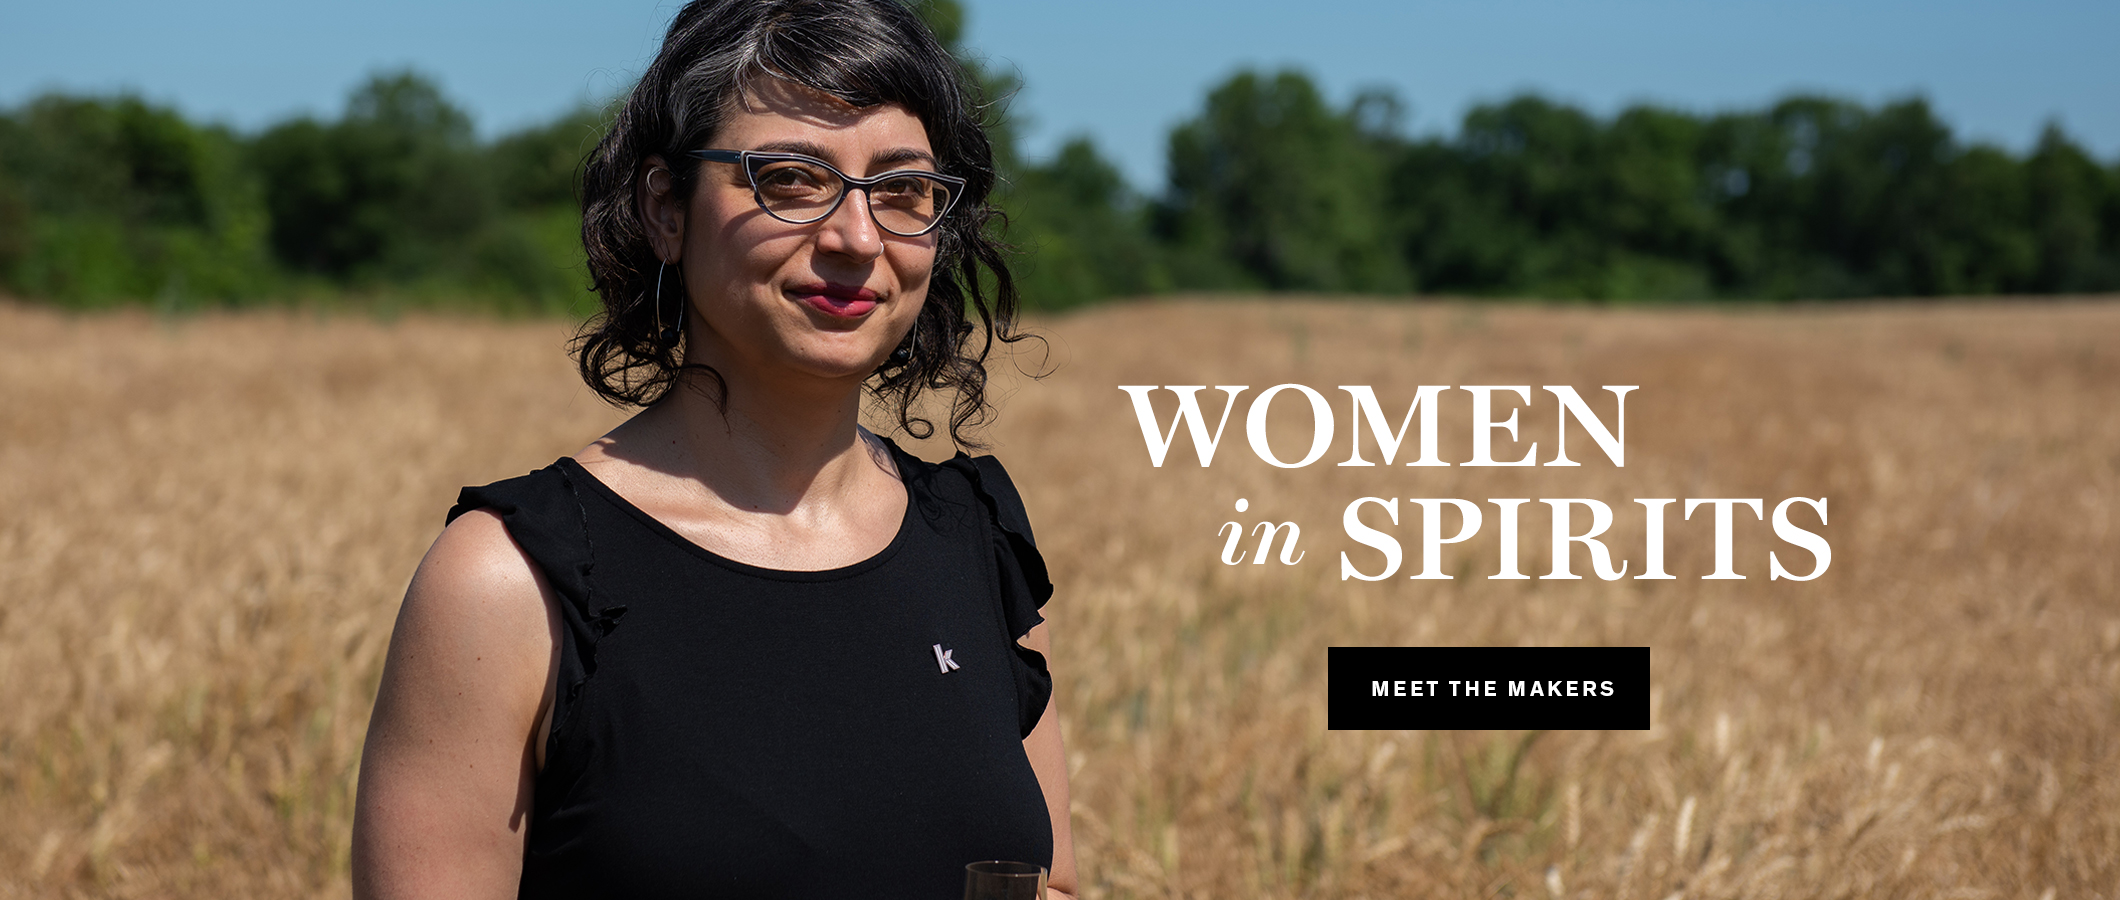 Women in Spirits . MEET THE MAKERS